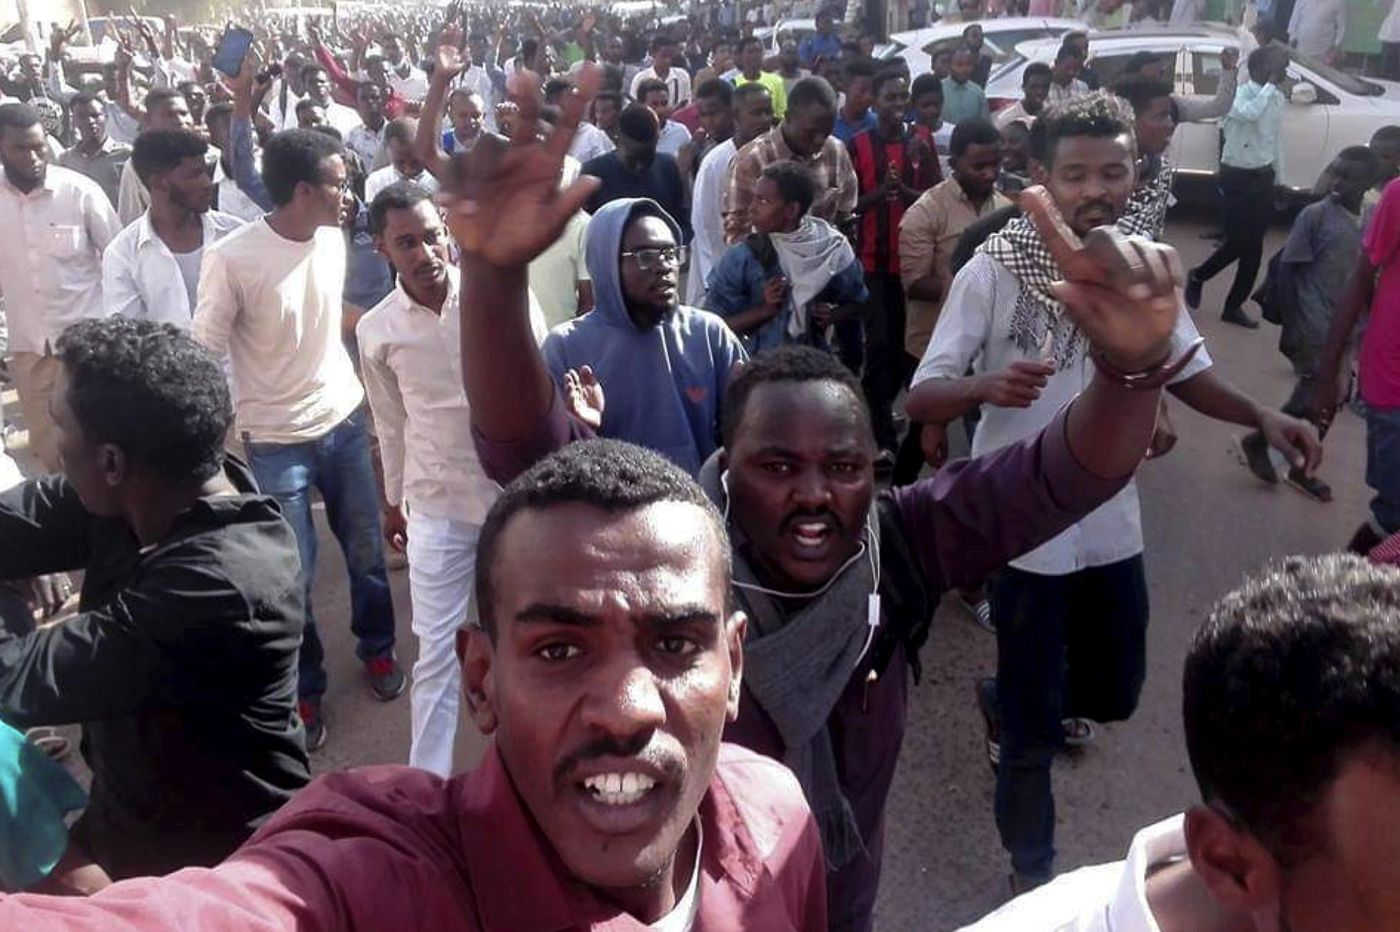 Protest hits Khartoum as police block march on palace